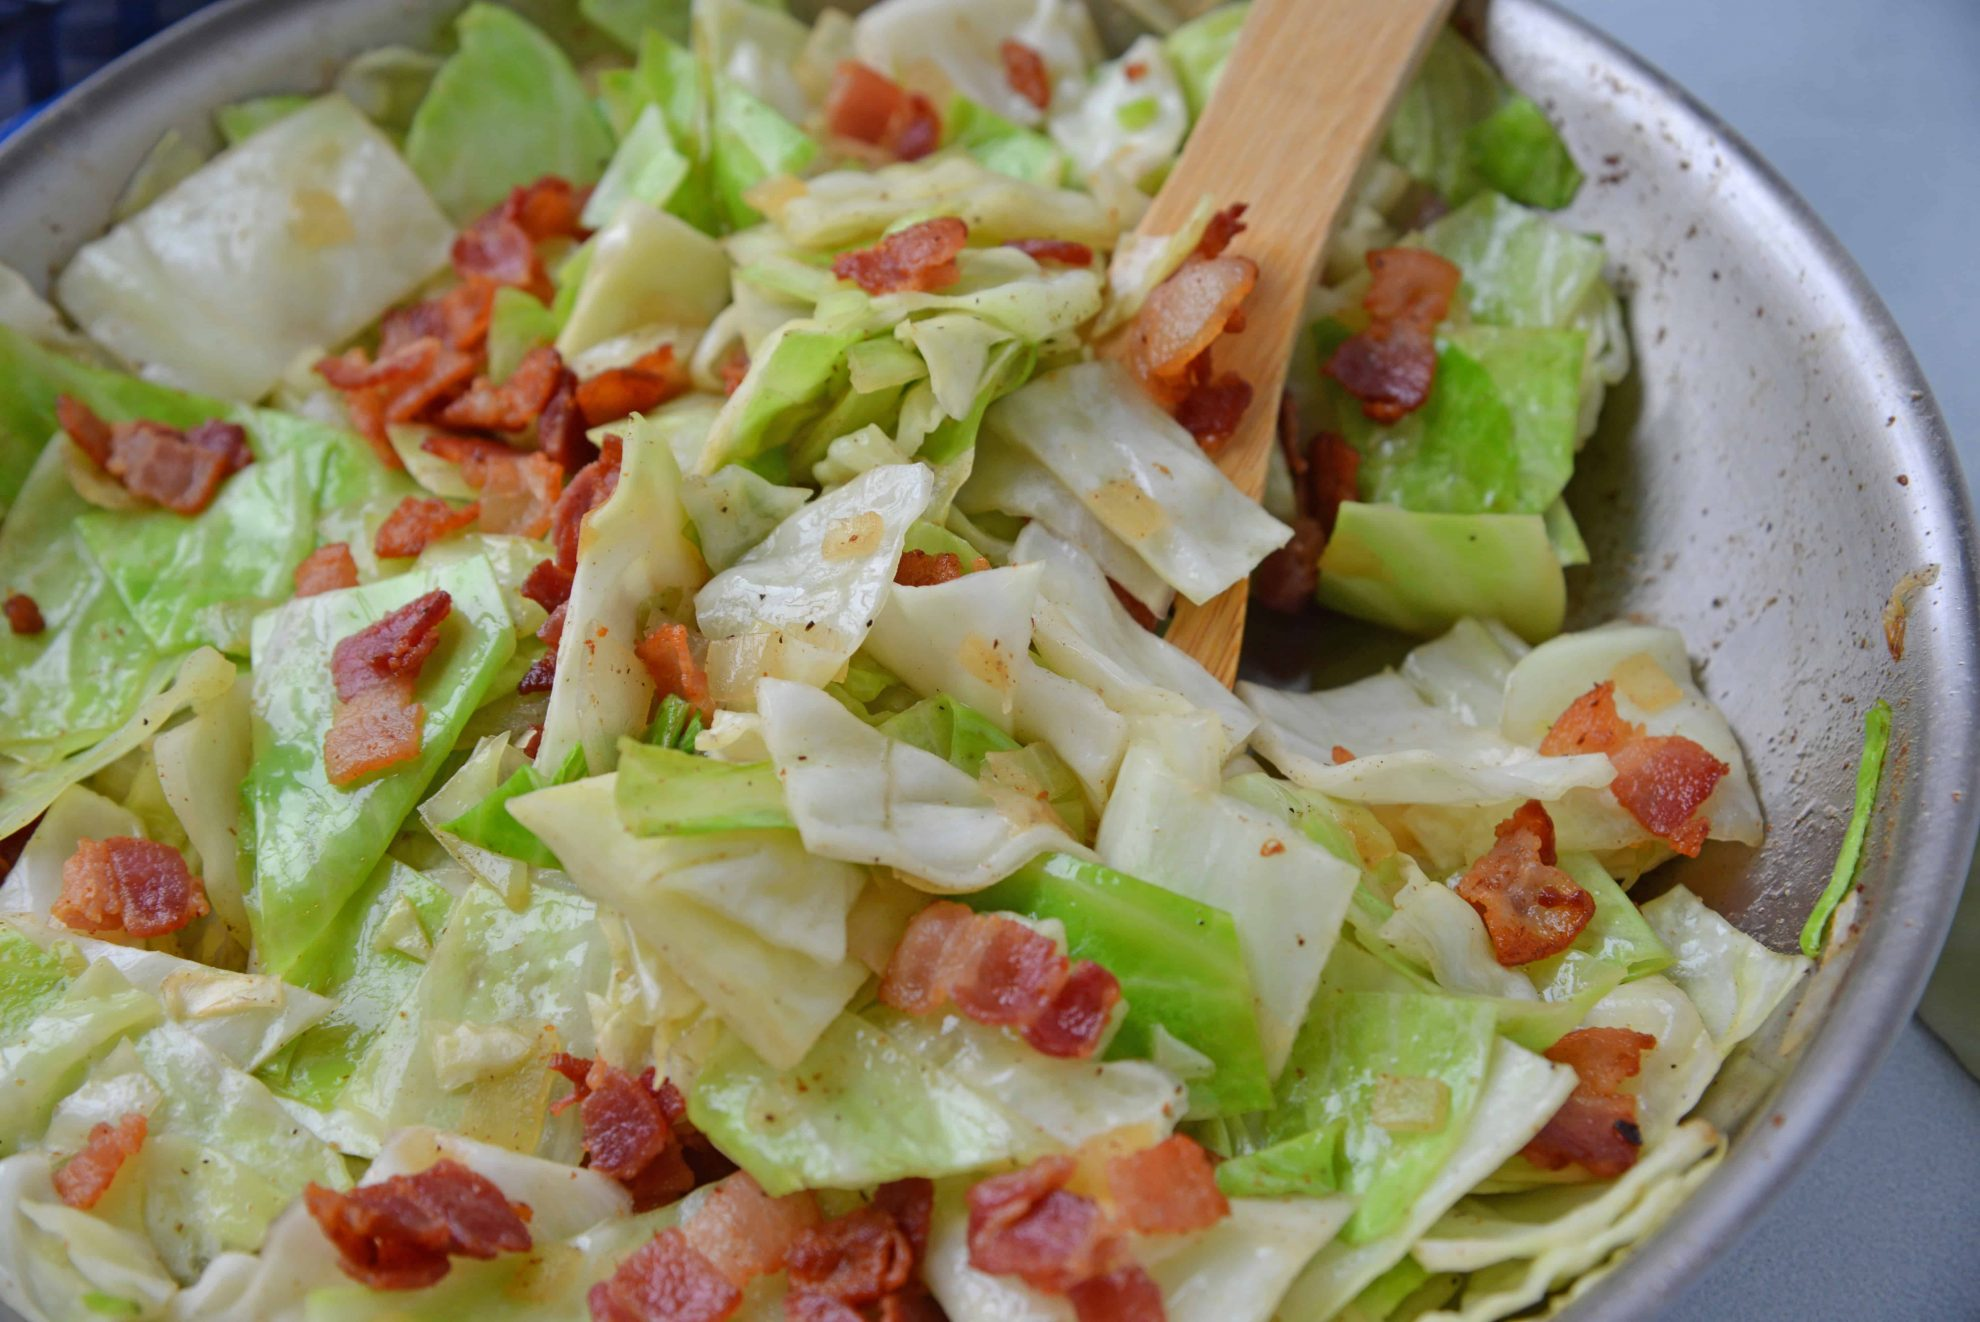 Fried Cabbage with bacon in skillet